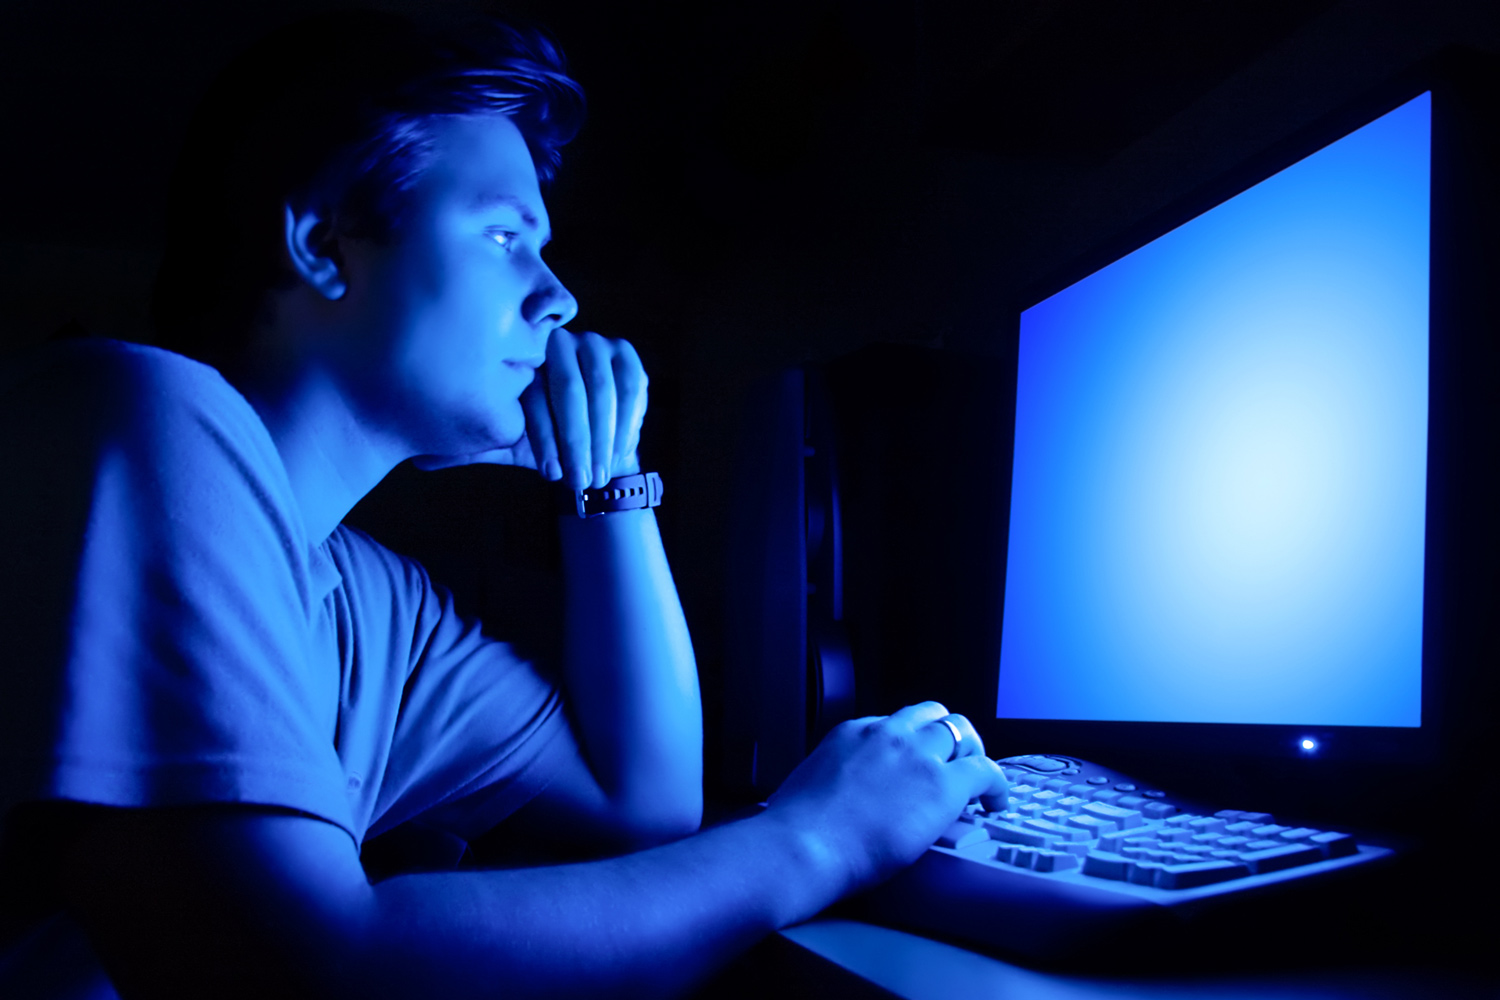 How to keep screen light from disrupting your sleep